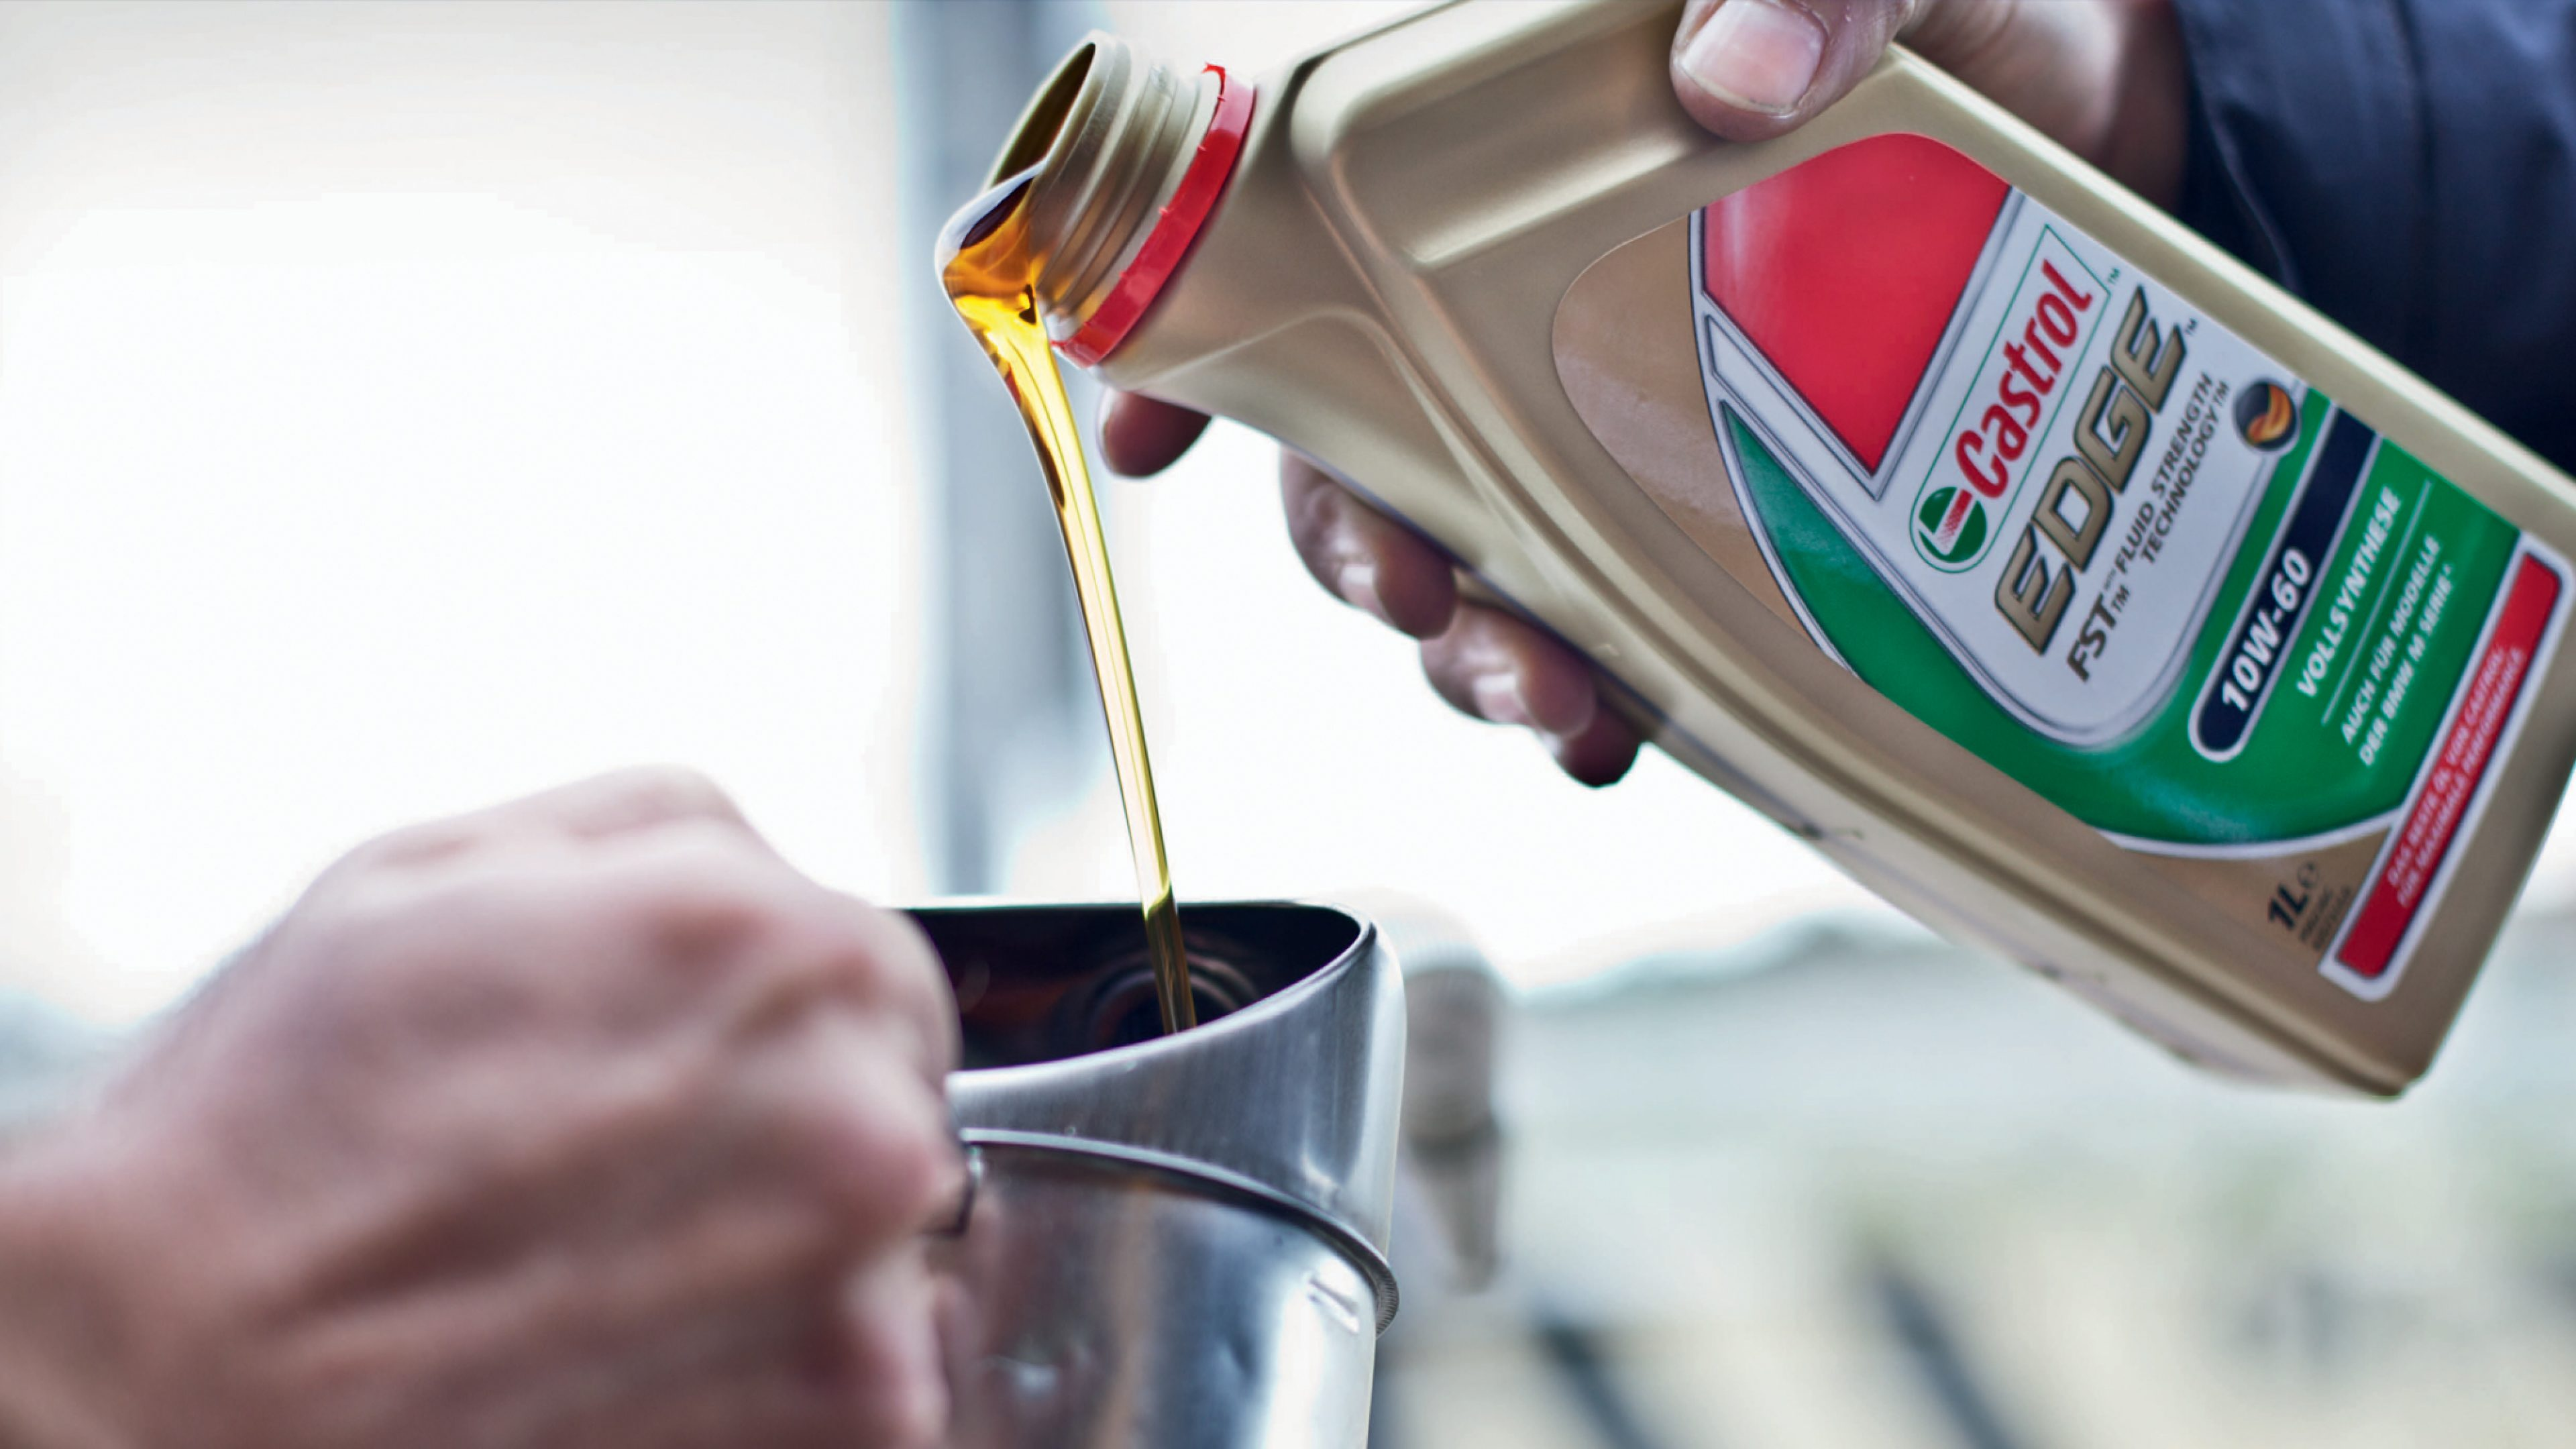 Castrol Edge lubricant being poured from the bottle into a silver container